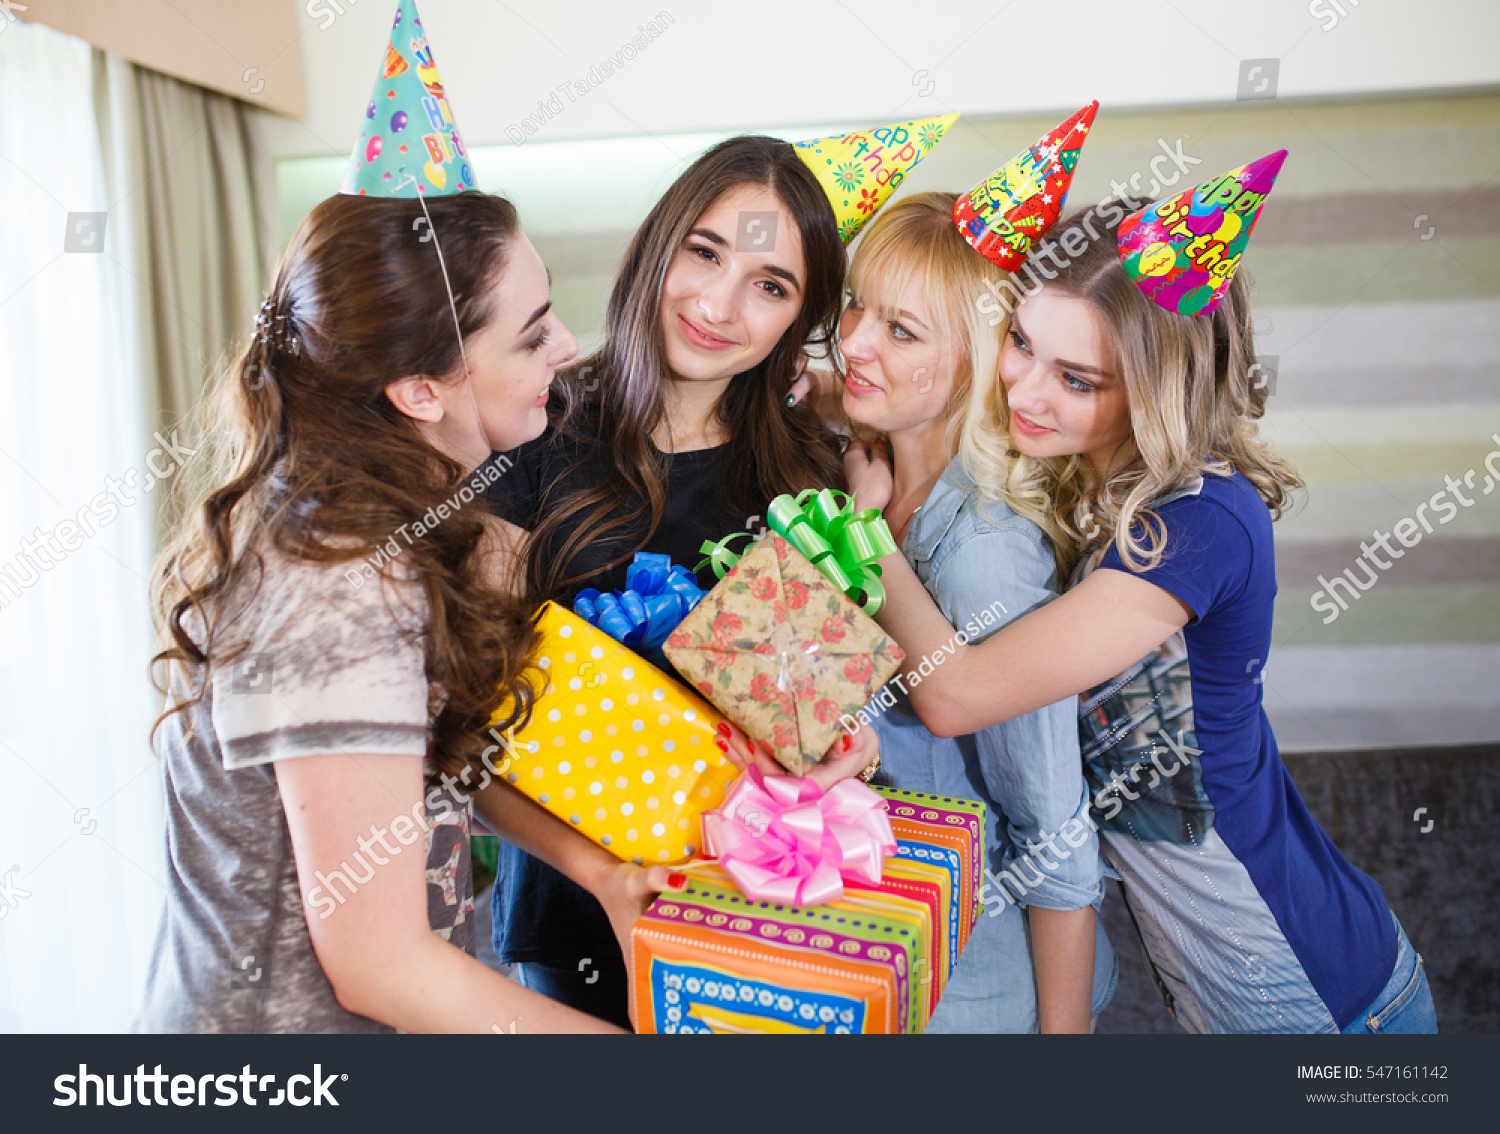 What to give a girl a birthday